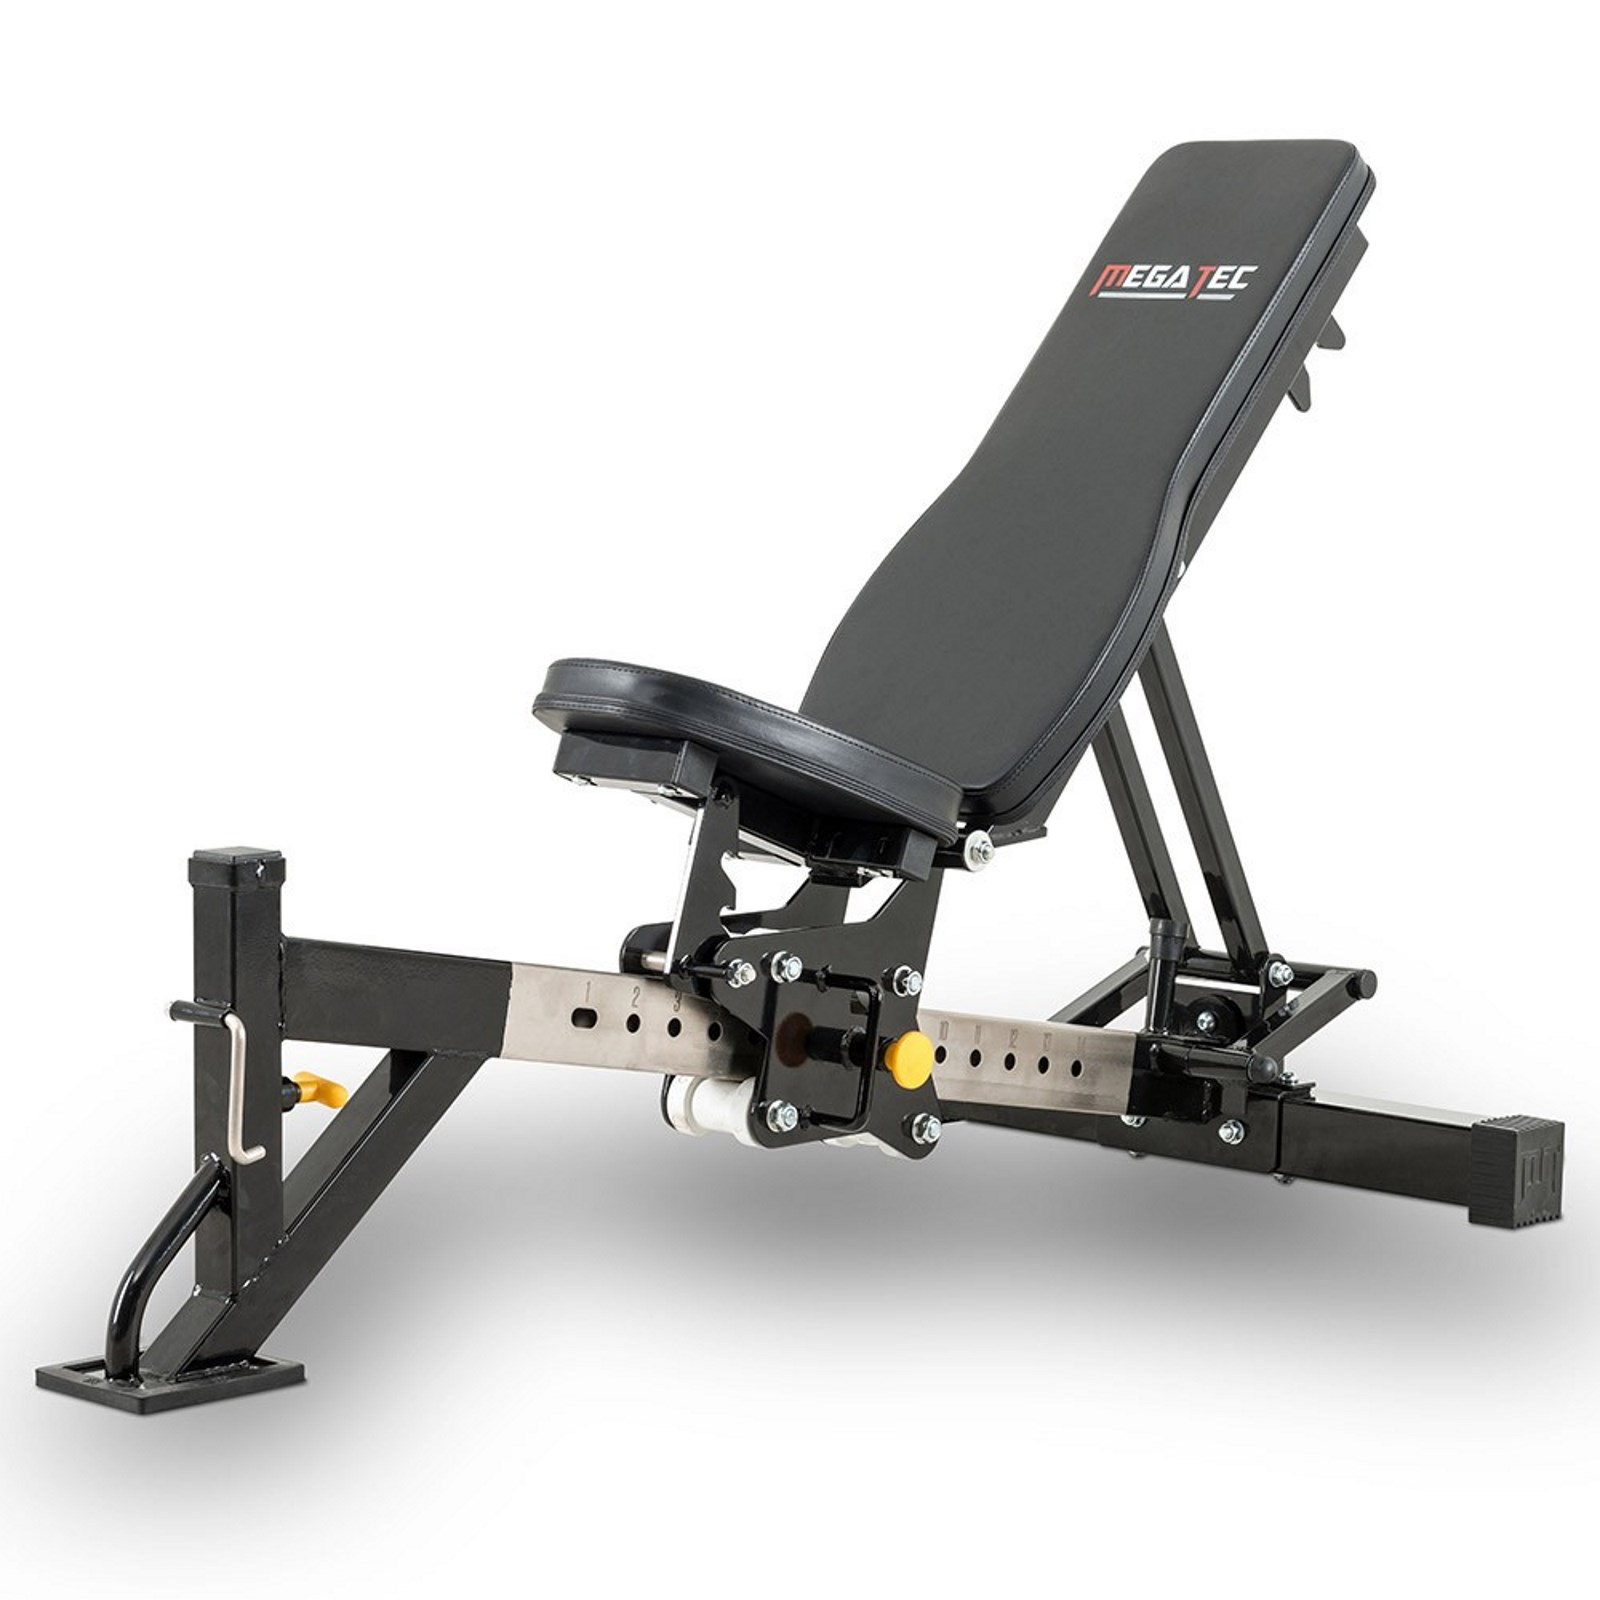 MegaTec incline/decline bench